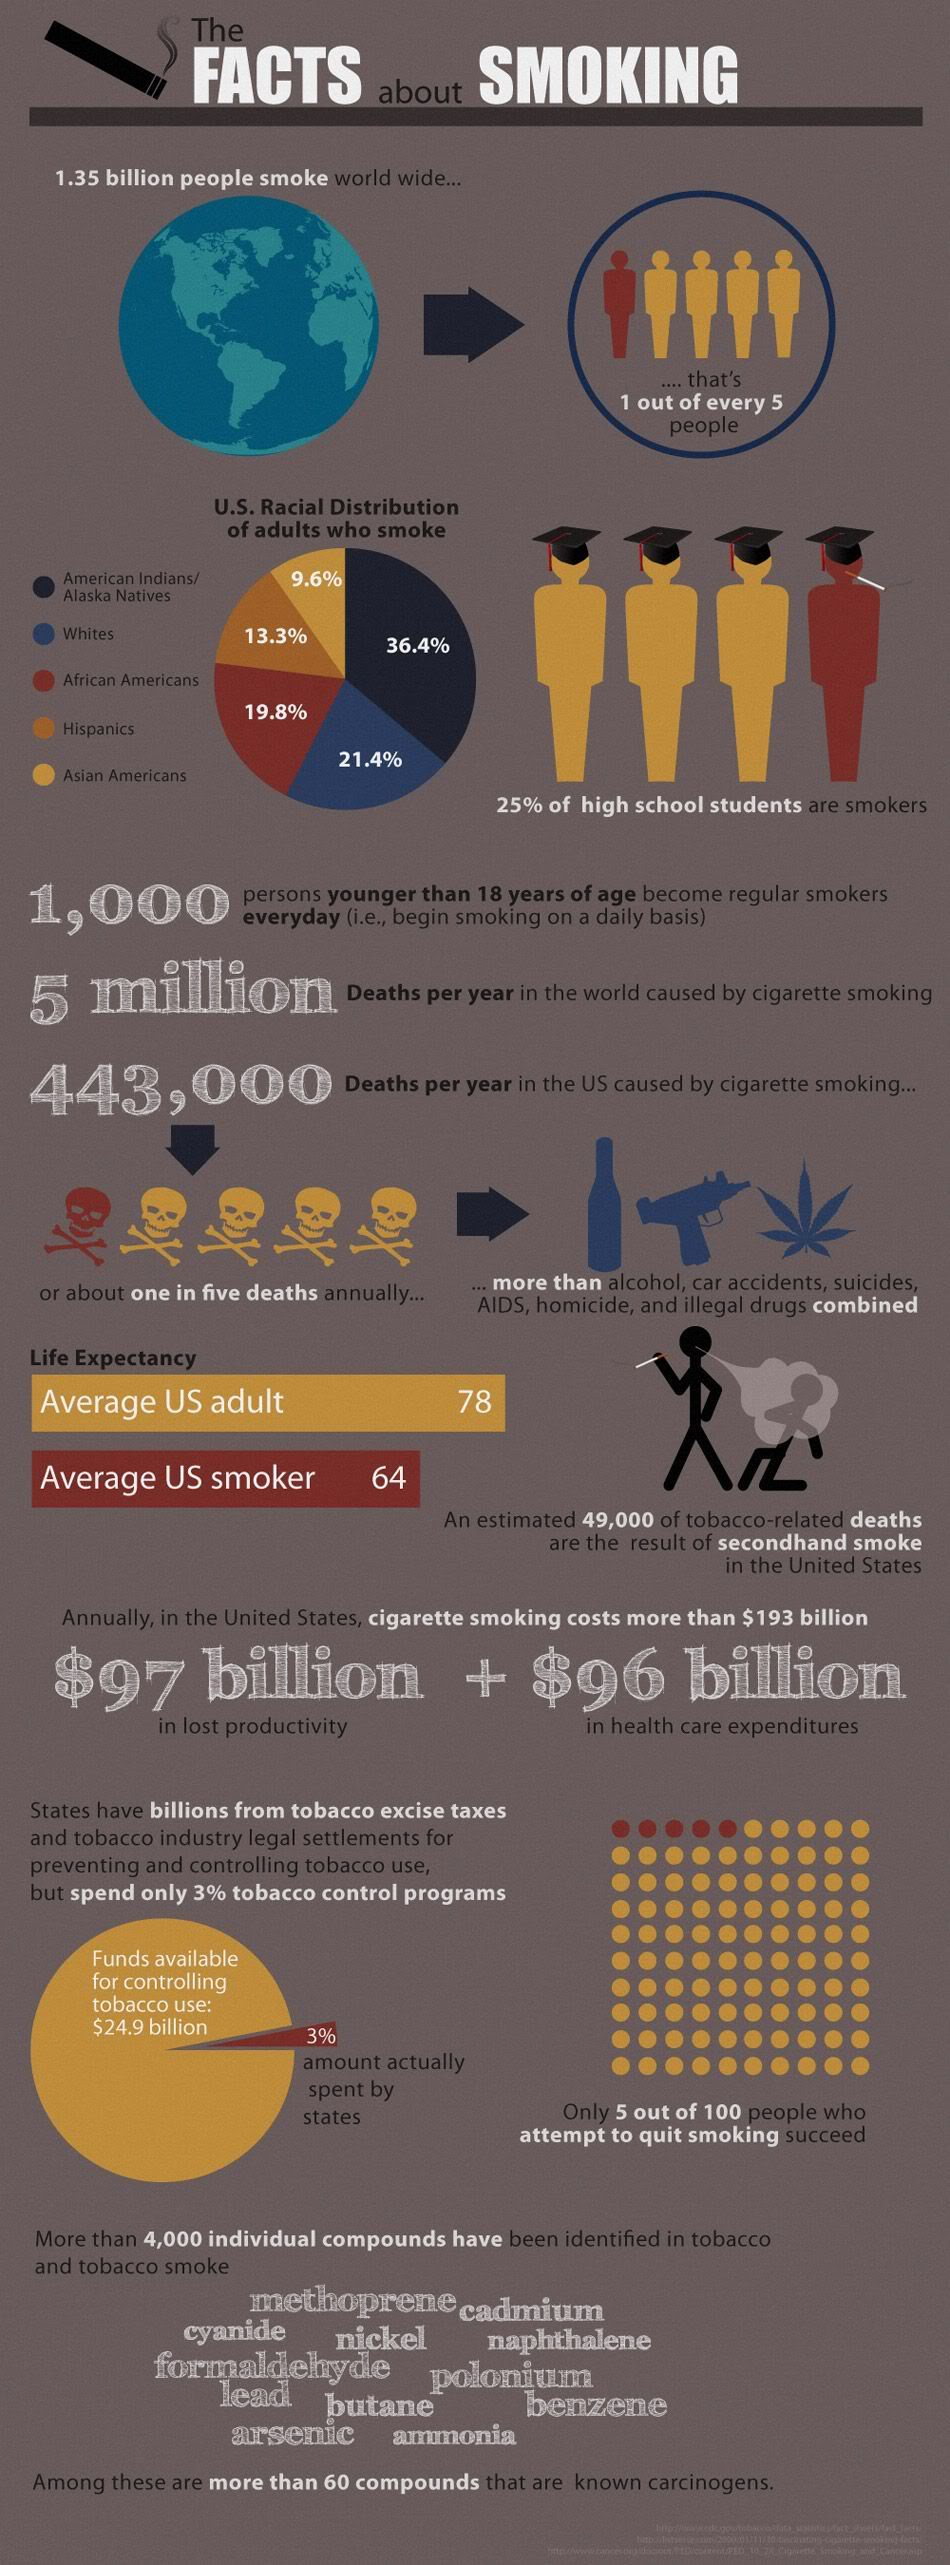 the-facts-about-smoking_5029162c3da07